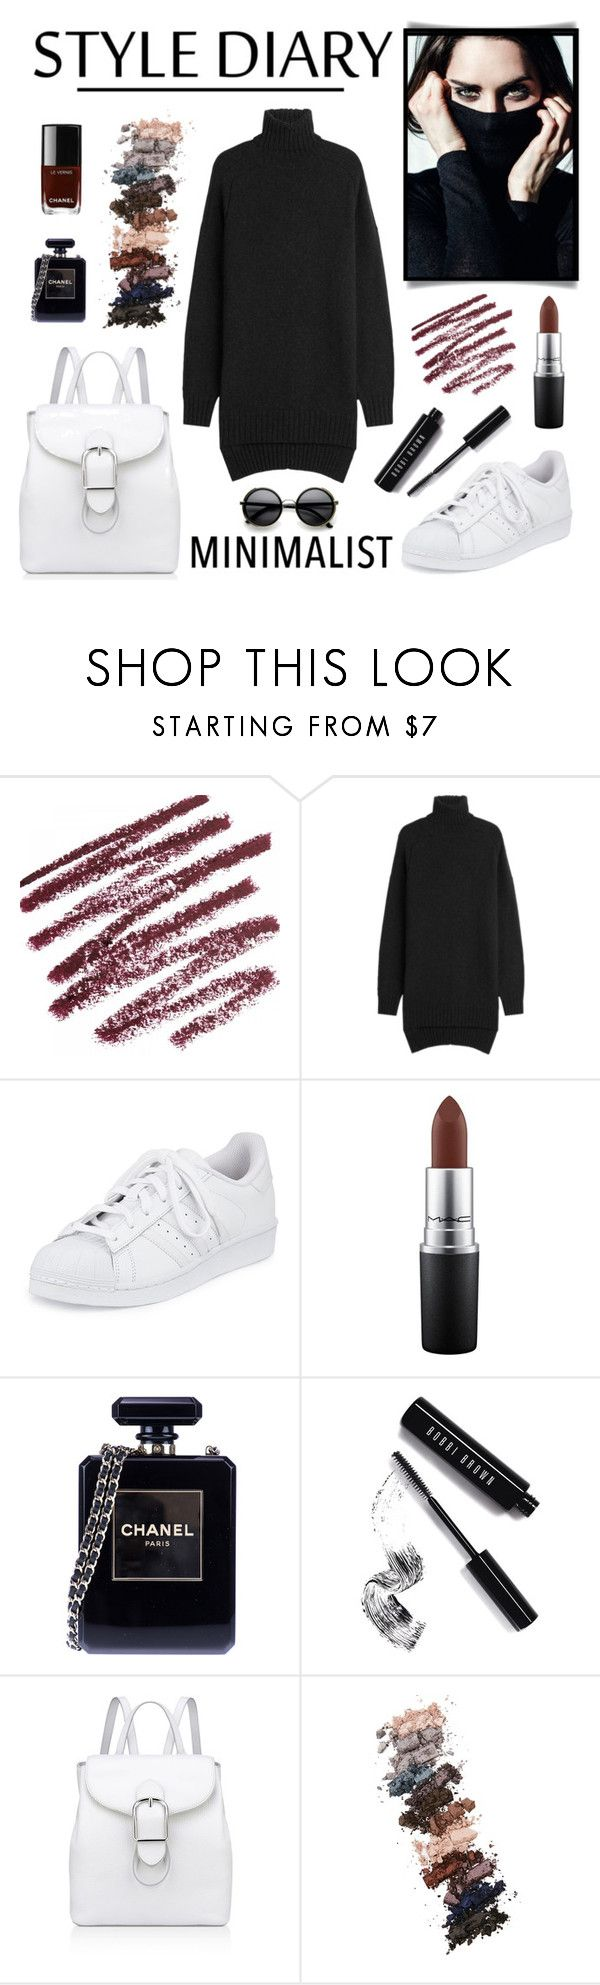 """""""Minimalist"""" by aurorabvik ❤ liked on Polyvore featuring Isabel Marant, adidas, MAC Cosmetics, Chanel, Bobbi Brown Cosmetics, Anne Klein, L.A. Girl and ZeroUV"""